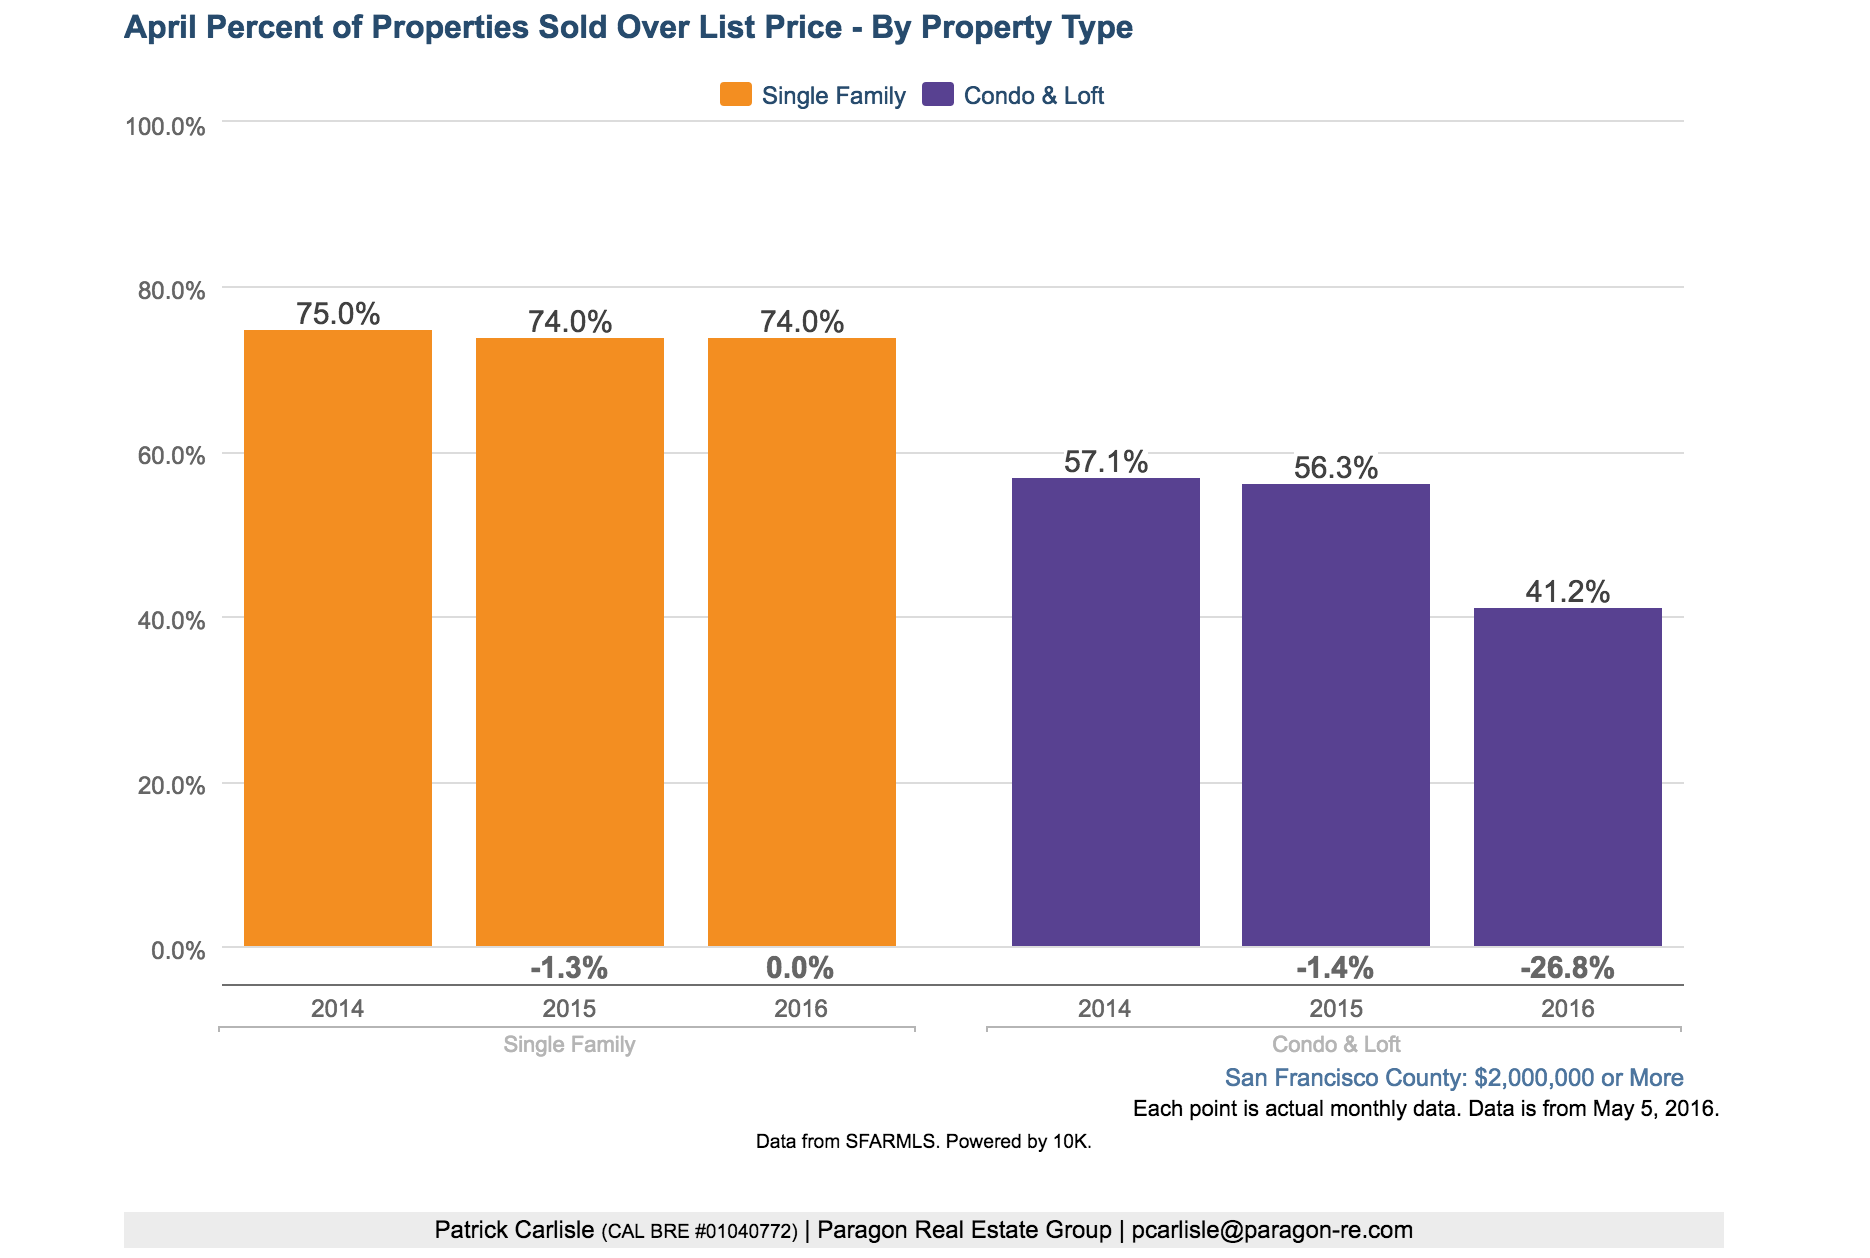 We are seeing a decrease in properties selling over the asking price, indicating a softening in the market and more negotiability for buyers.